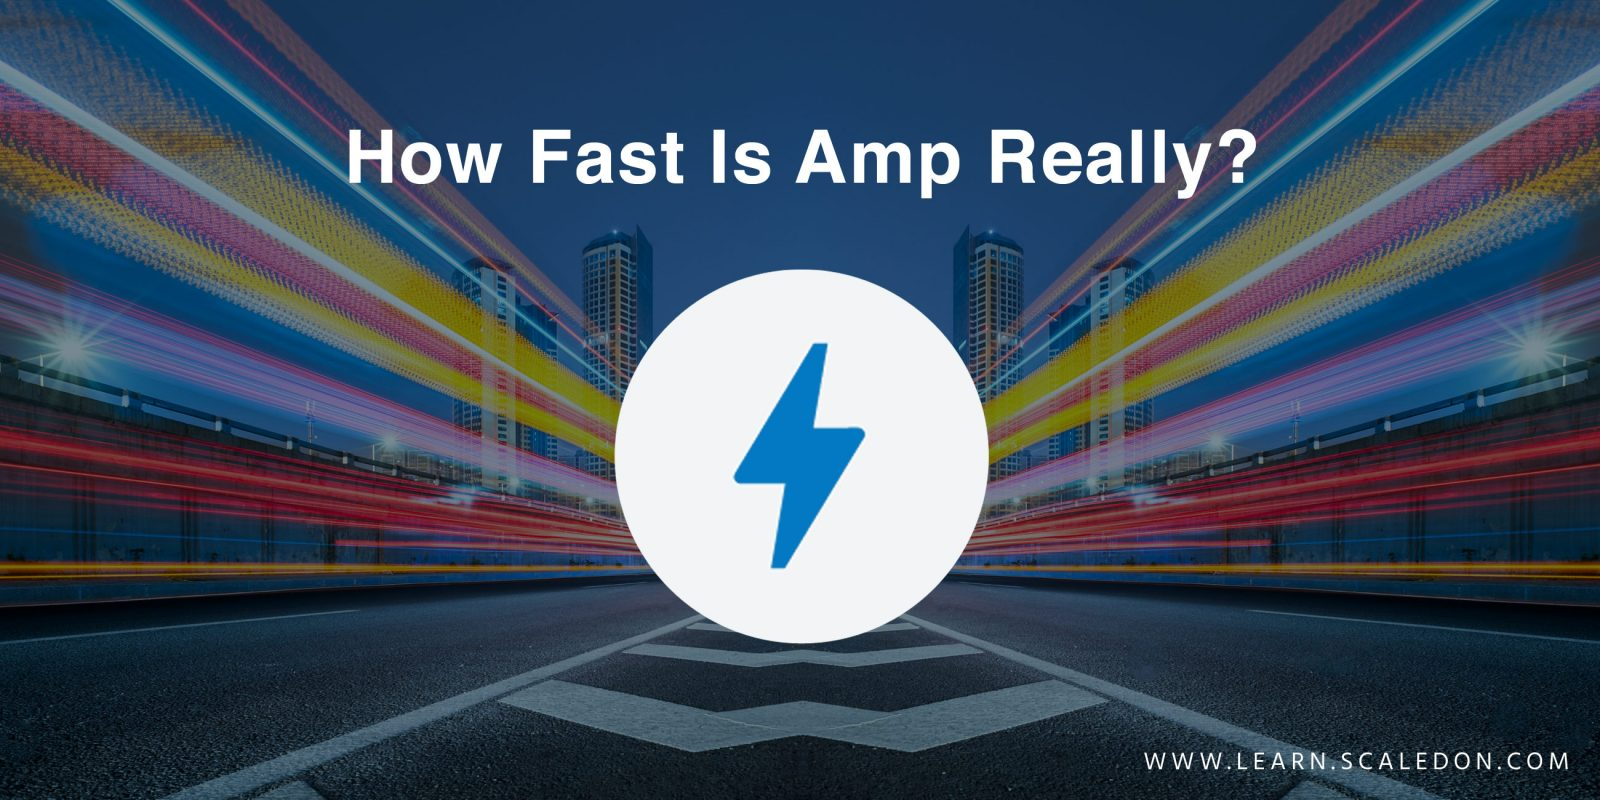 How Fast Is Amp Really